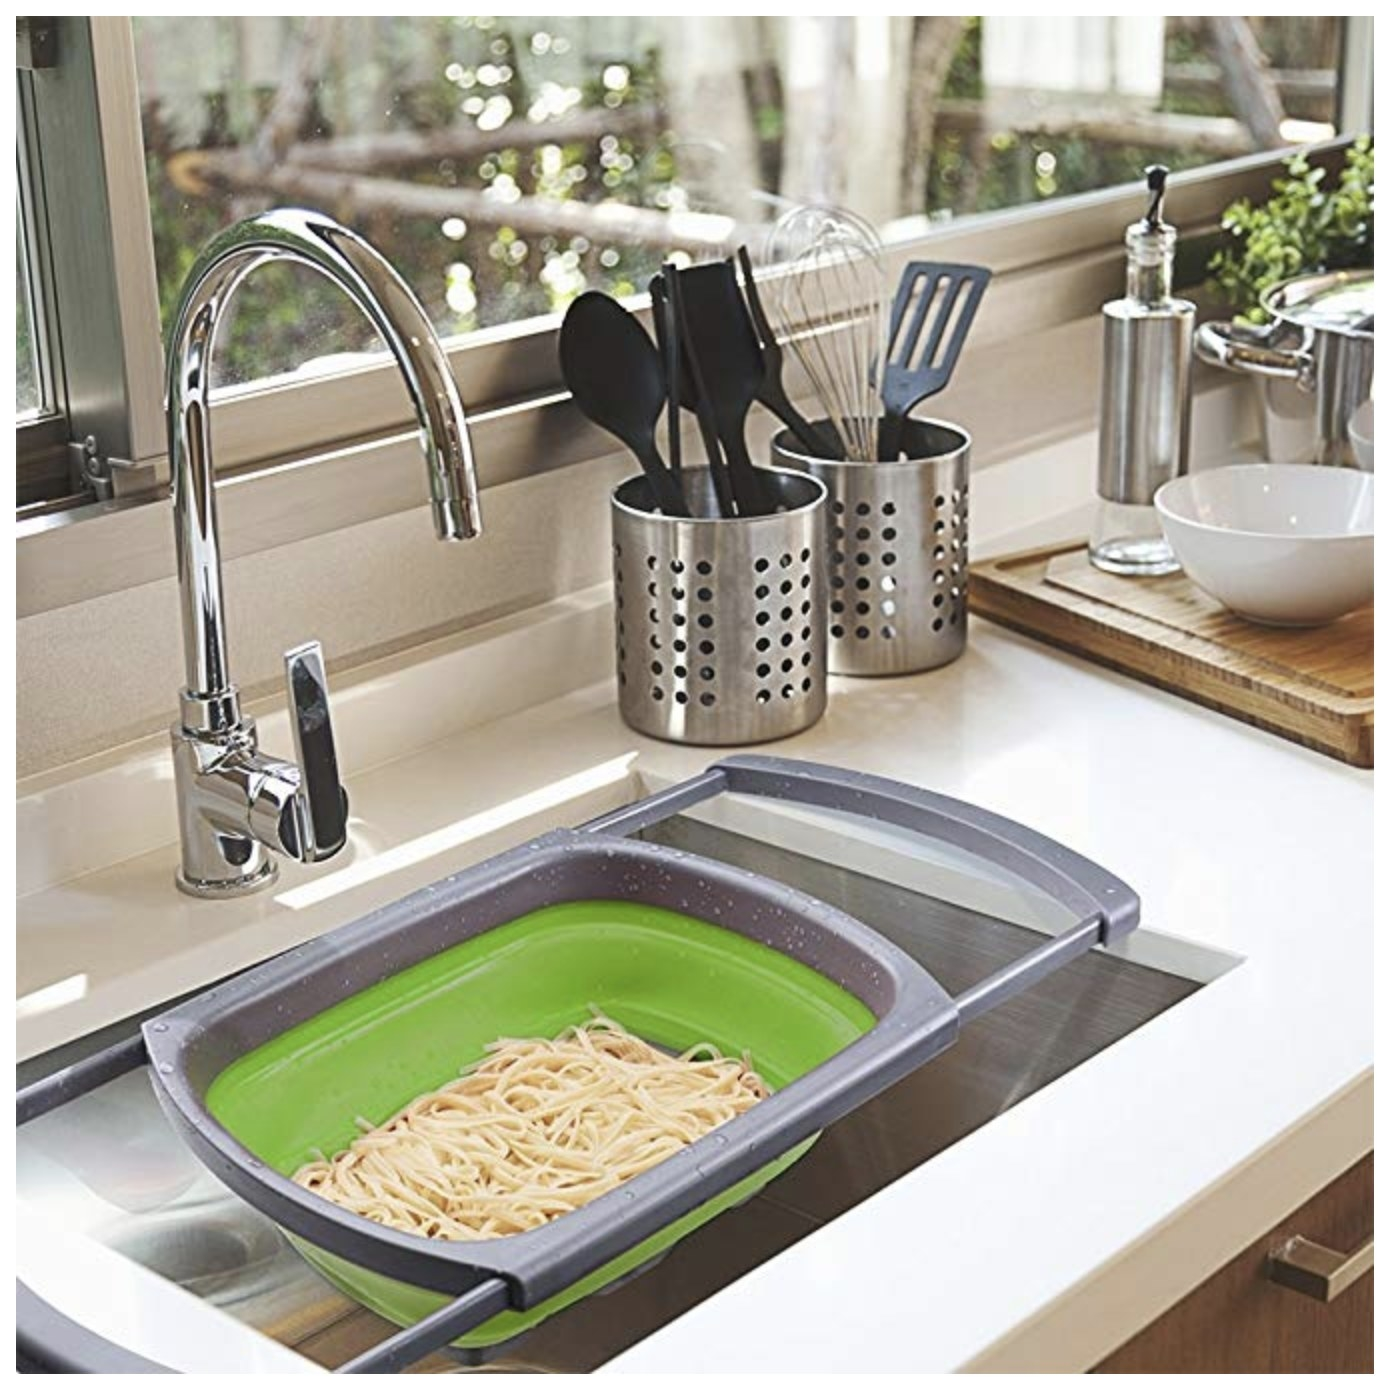 over-the-sink colander with noodles in it